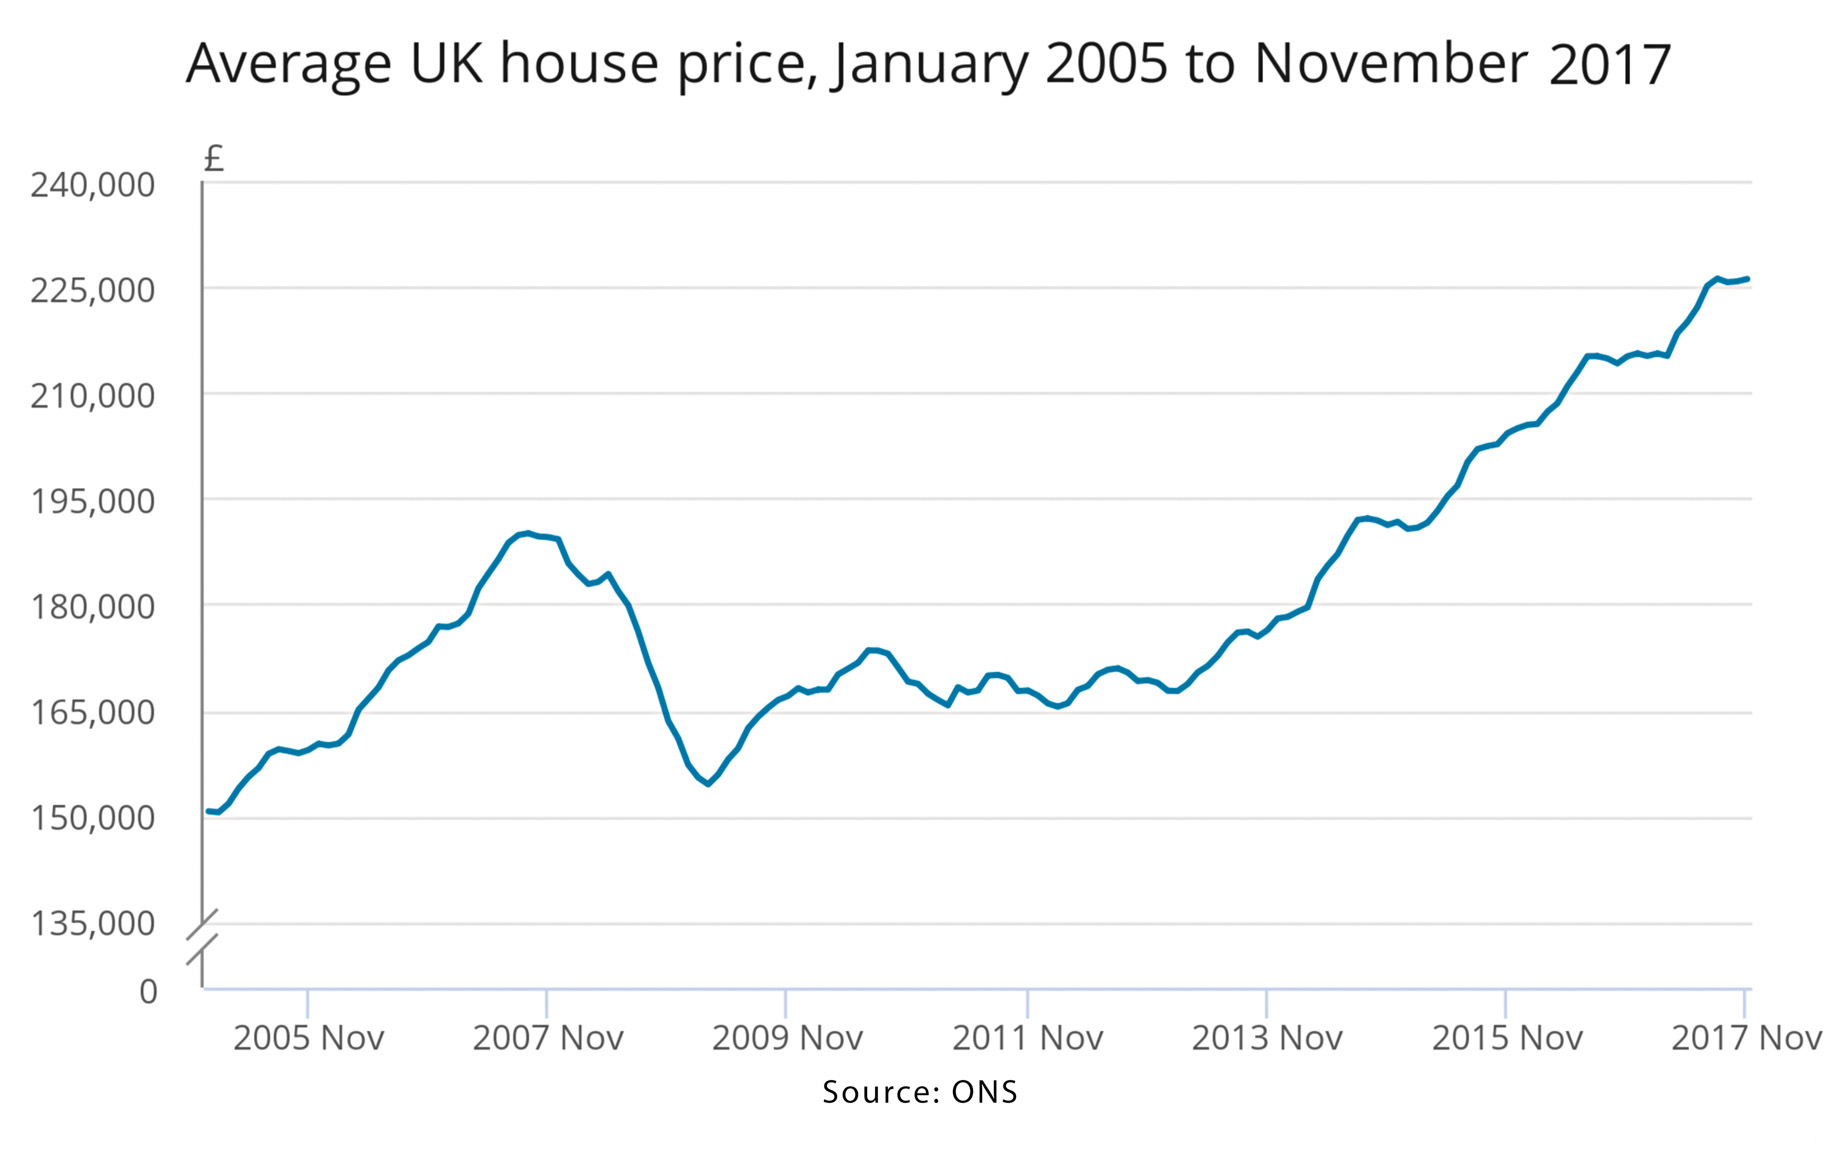 Average UK House Price from January 2005 to November 2017